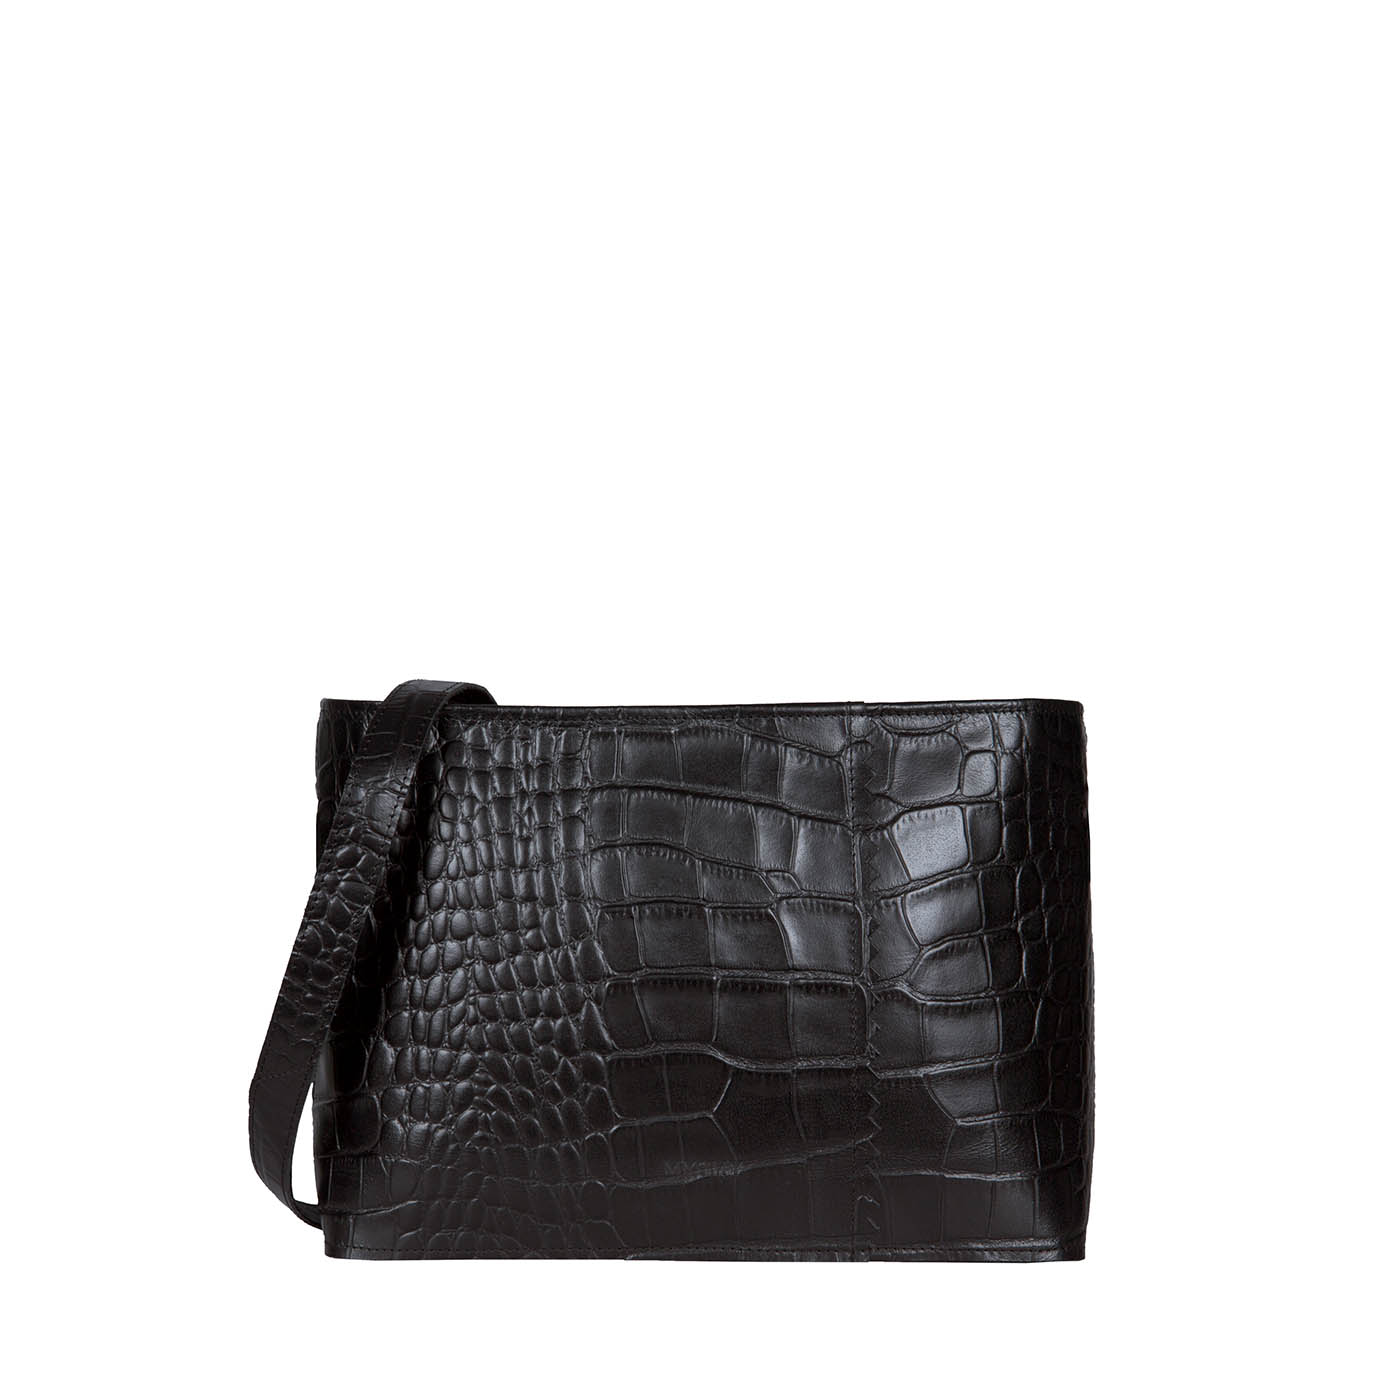 MY PAPER BAG Wrapped cross-body – croco black